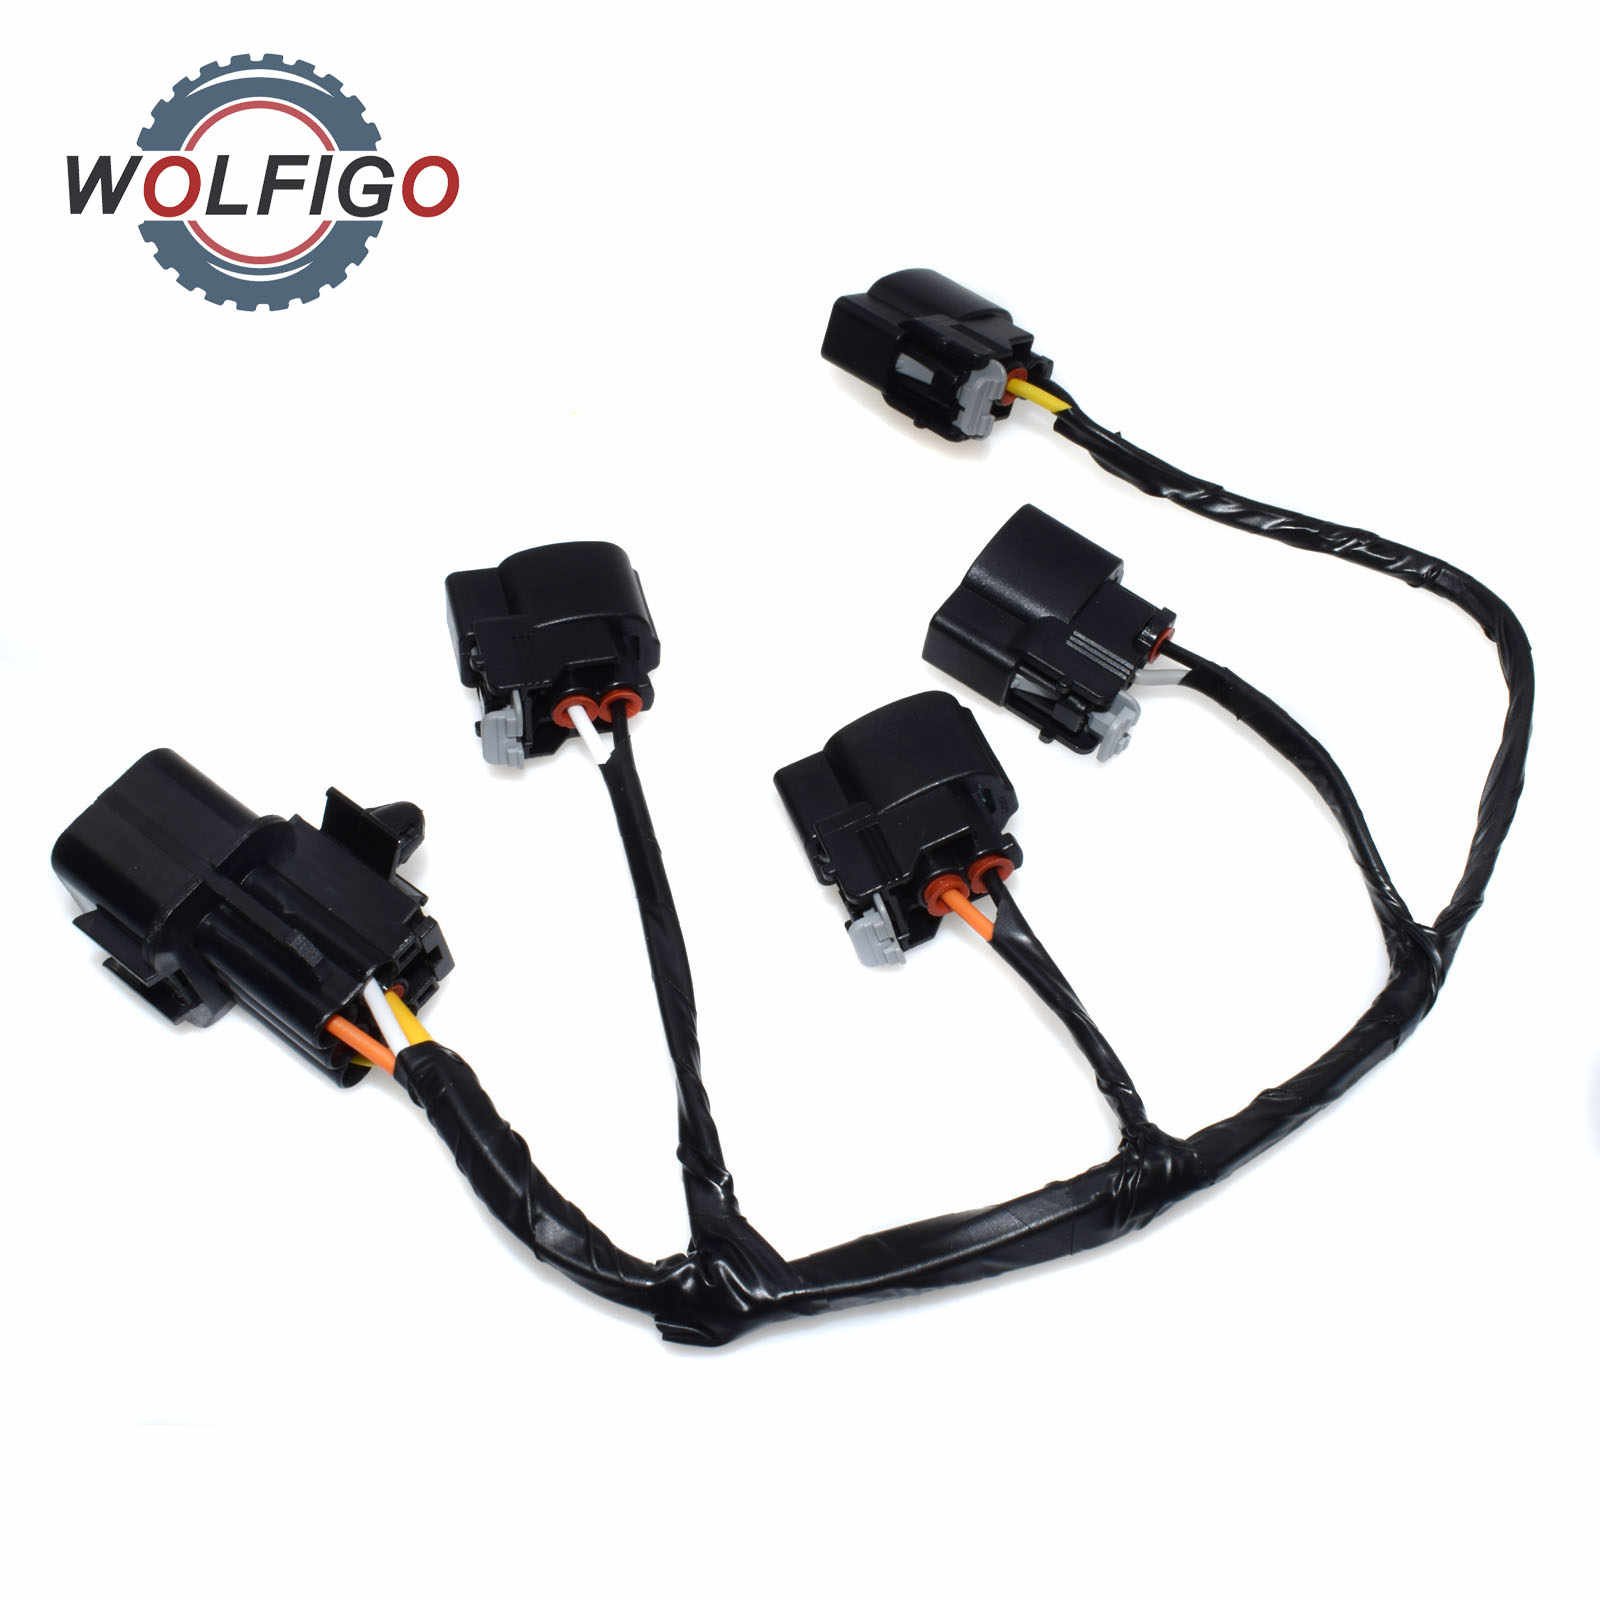 hight resolution of wolfigo new ignition coil wire harness for hyundai veloster kia rio soul 273502b000 27350 2b000 27301